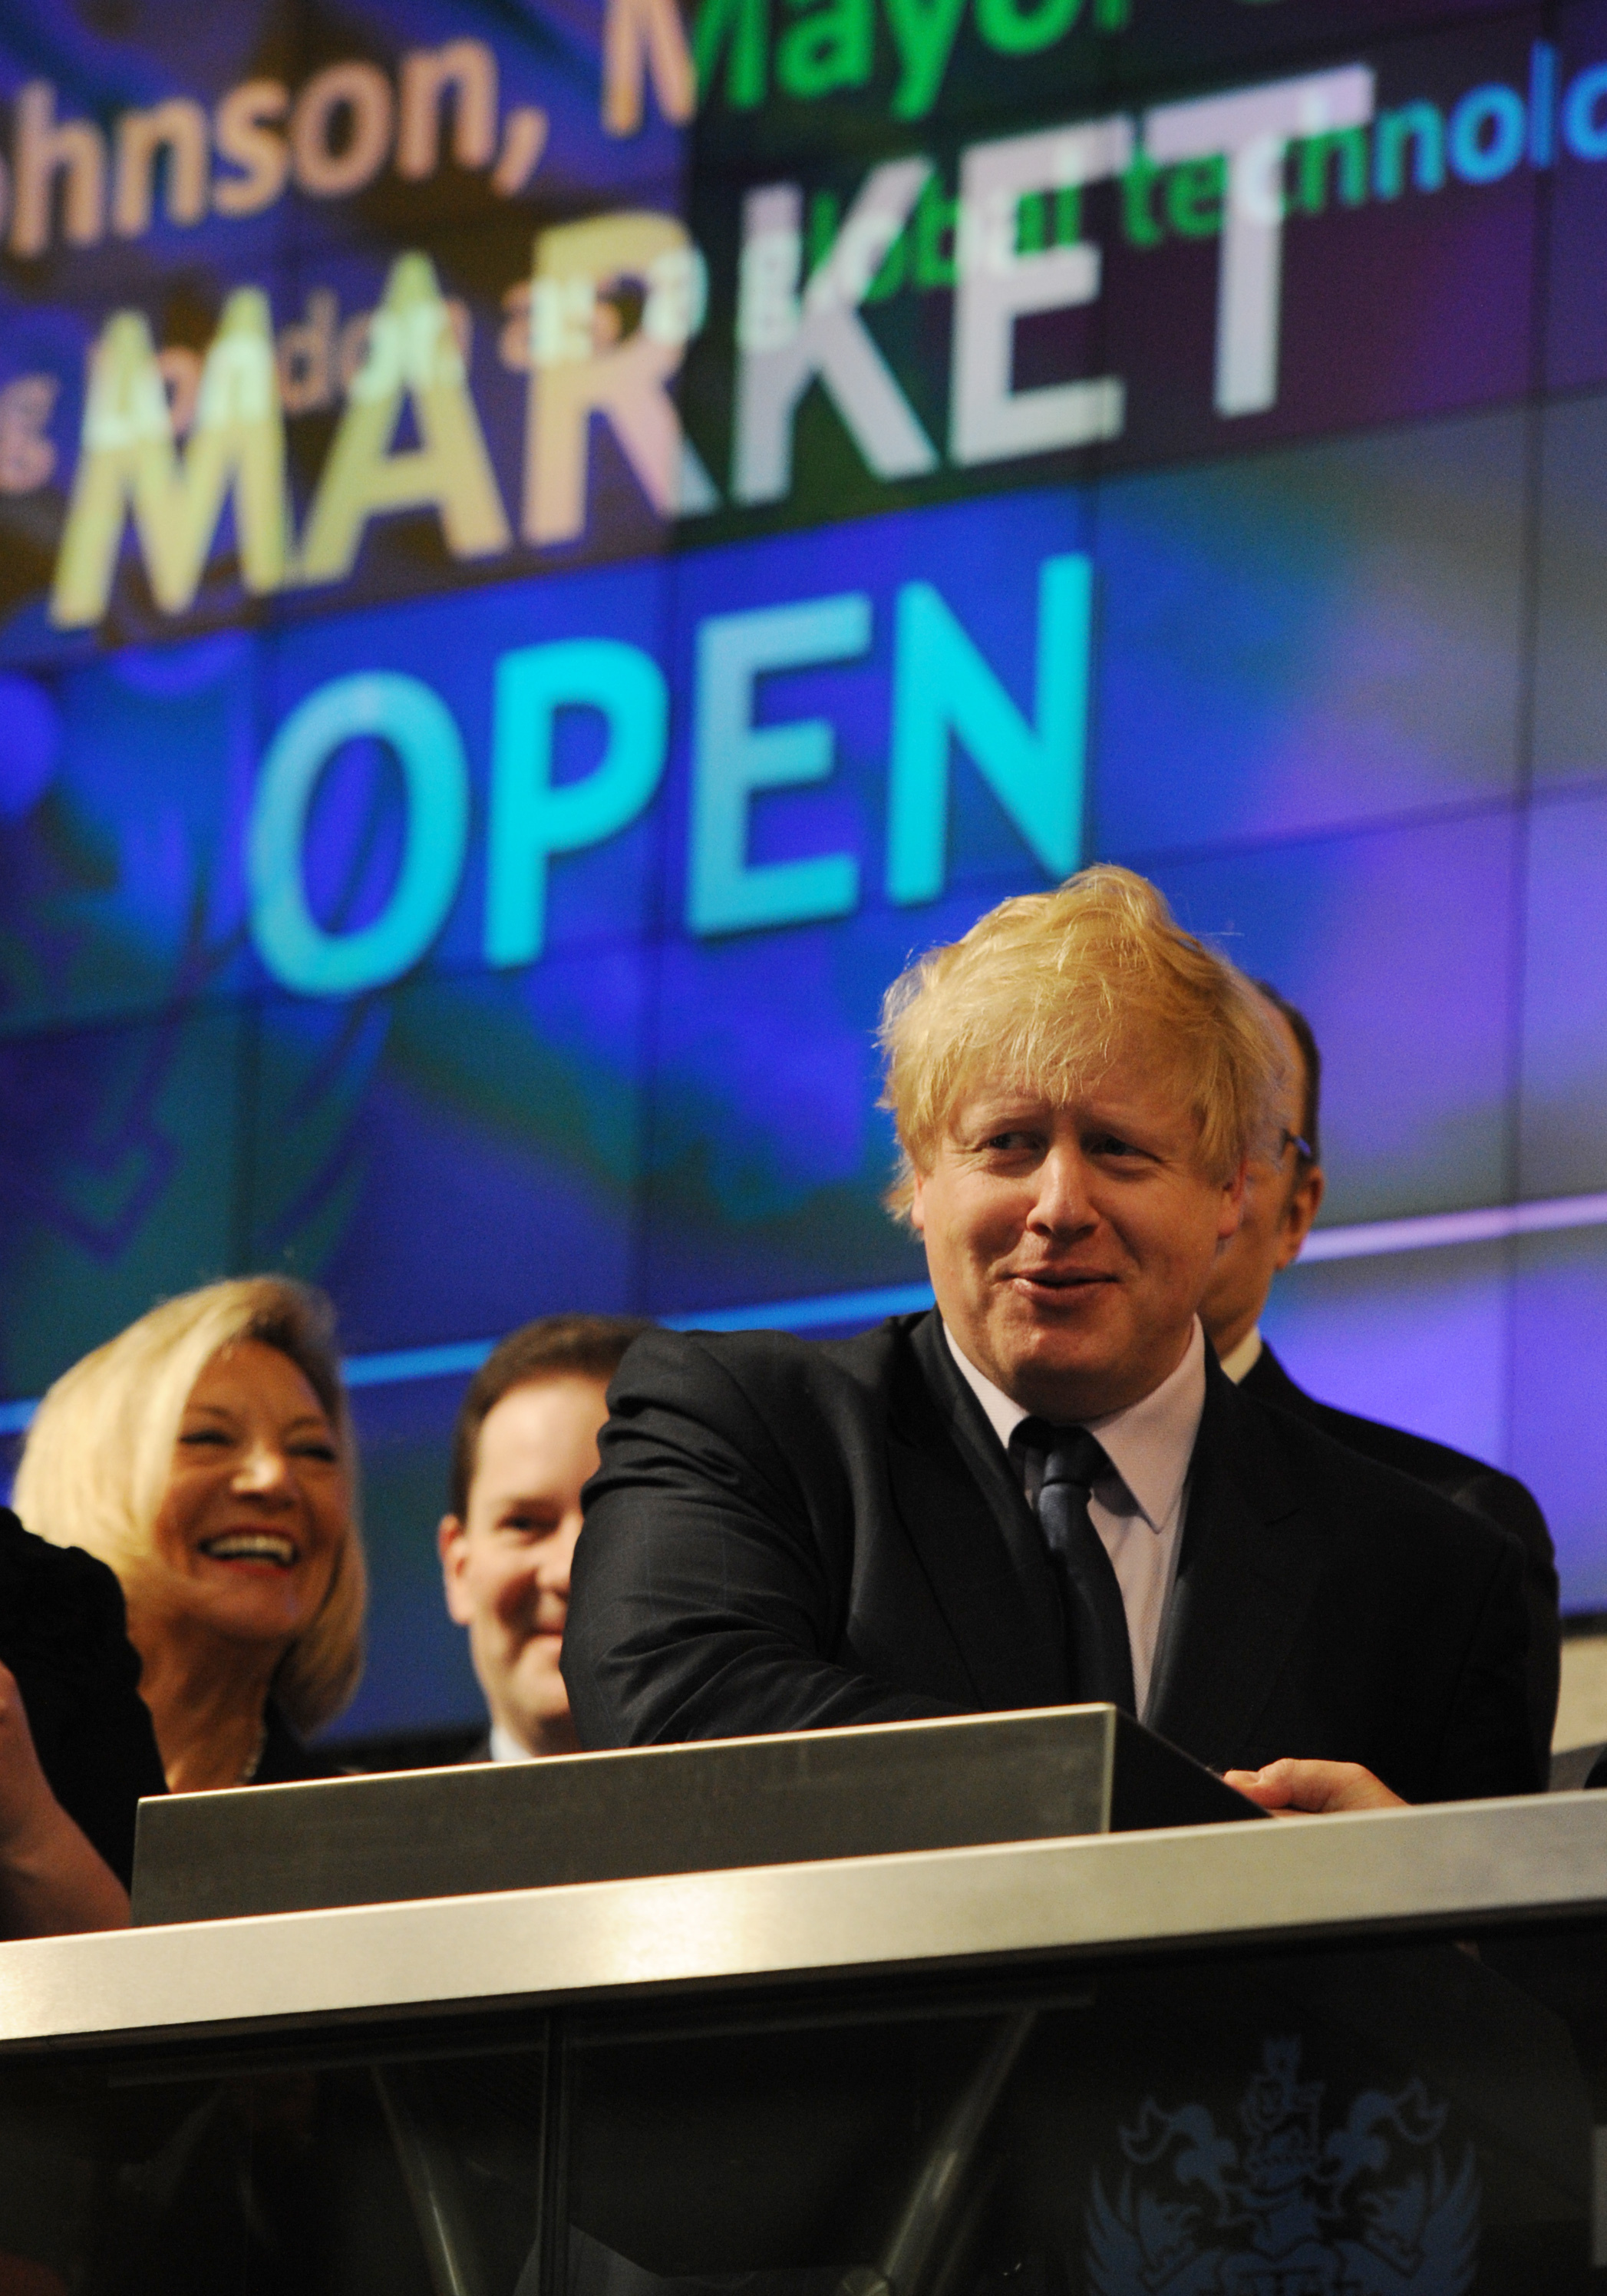 London Mayor Boris Johnson opens trading at the London Stock Exchange in London today. ASSOCIATION Photo. Picture date: Tuesday February 12 2013. Photo credit should read: Stefan Rousseau/PA Wire